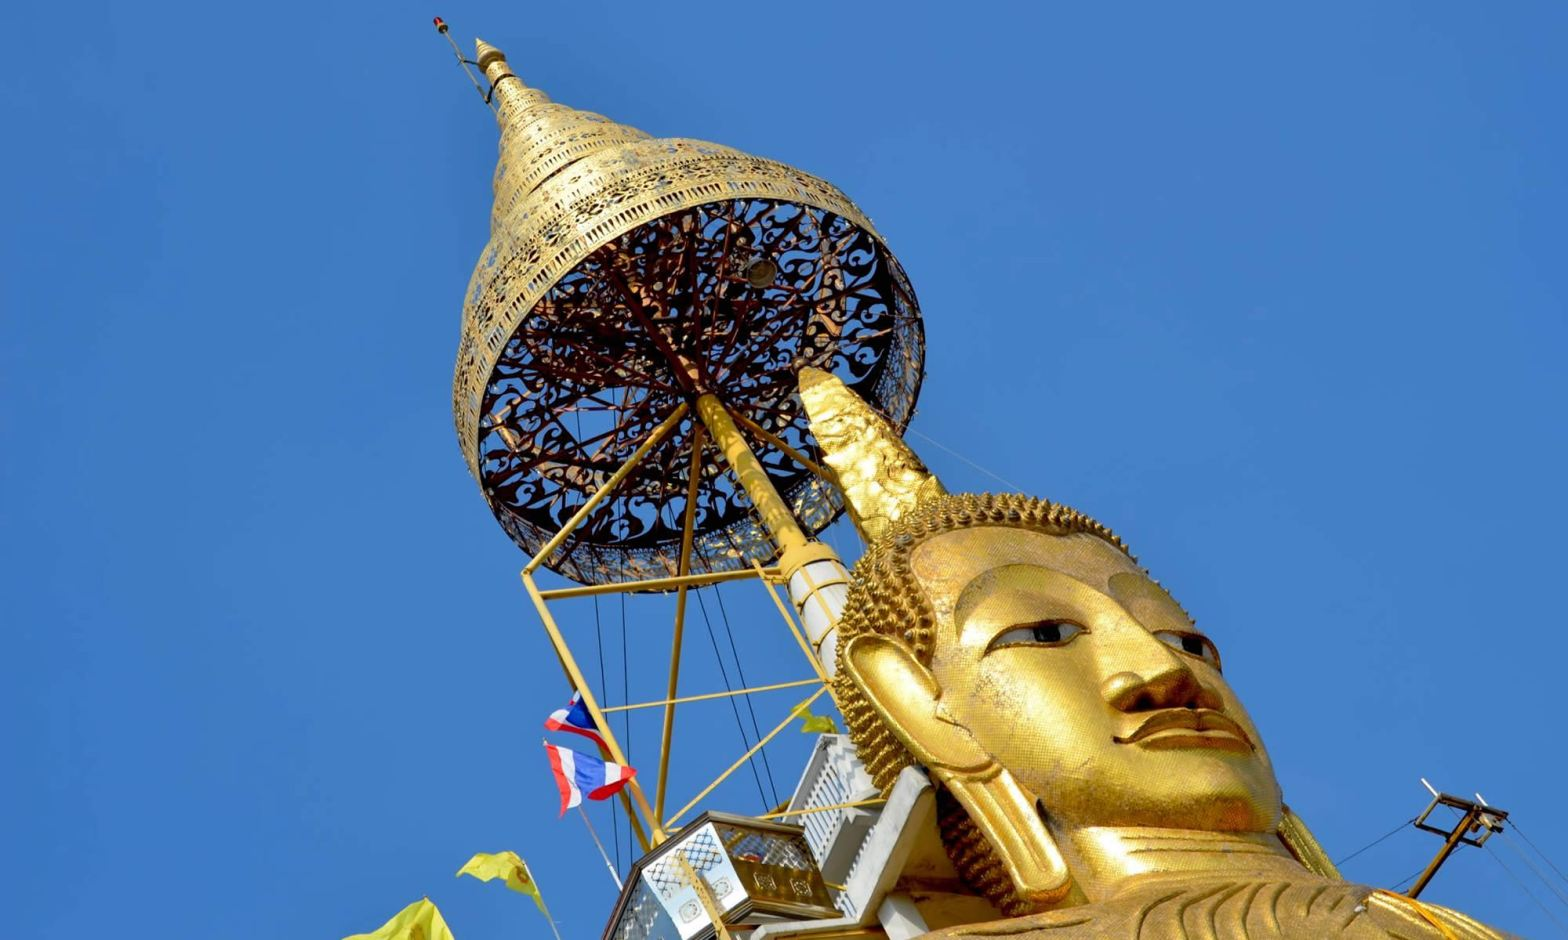 Close up of the face of the Standing Buddha at Wat Intharawihan in Bangkok